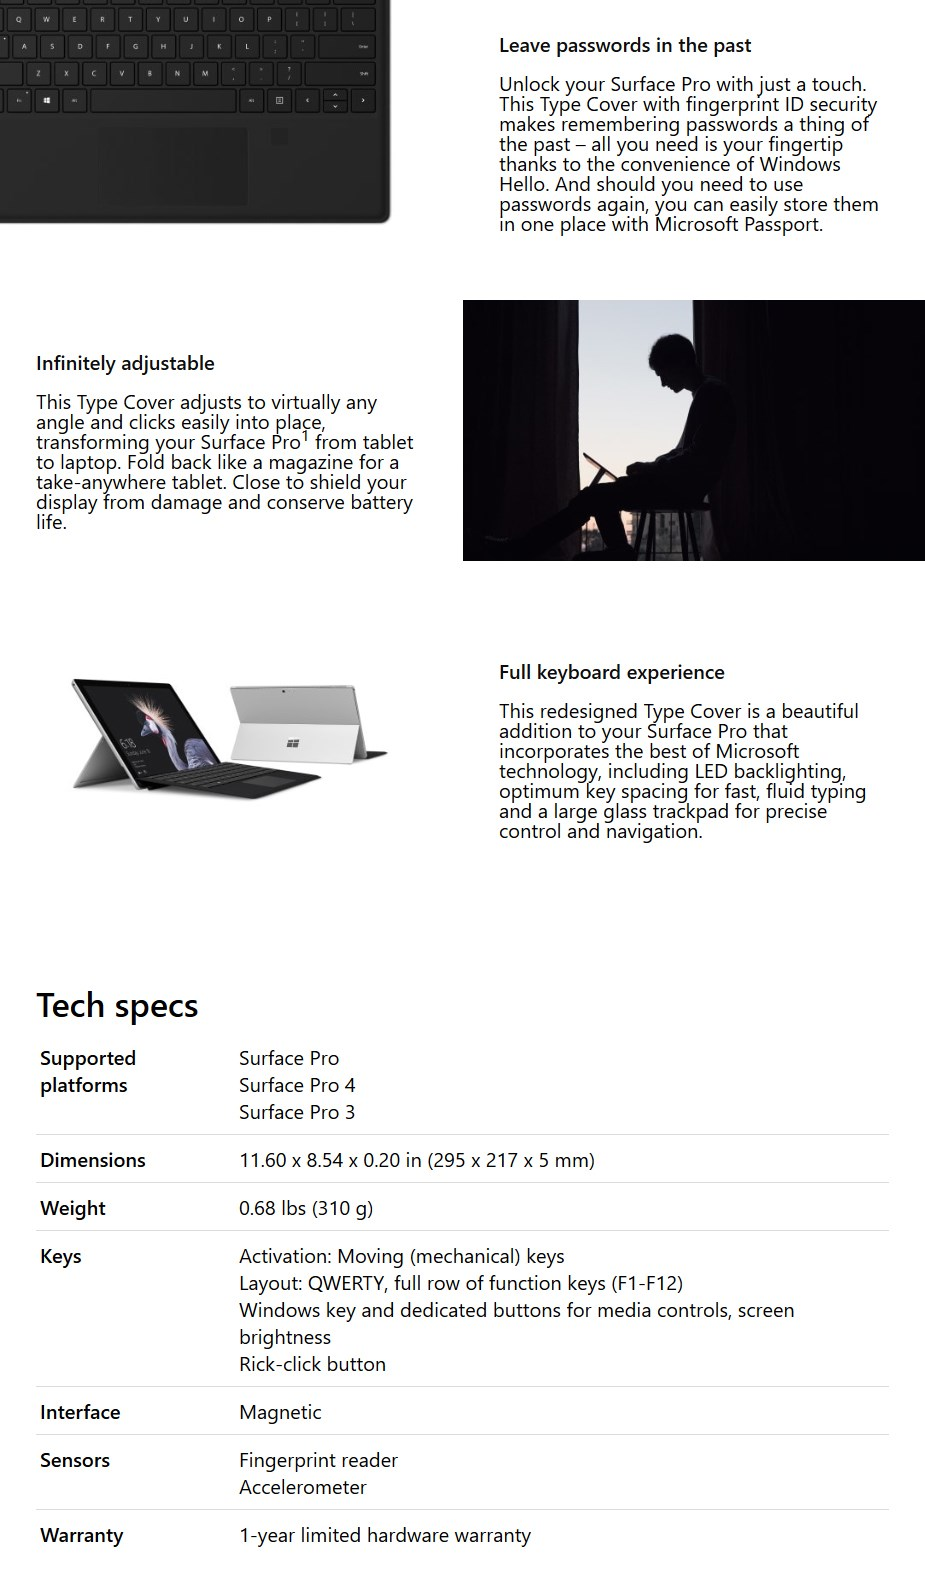 Microsoft Surface Pro Type Cover with Fingerprint ID - Black Comm - Desktop Overview 1